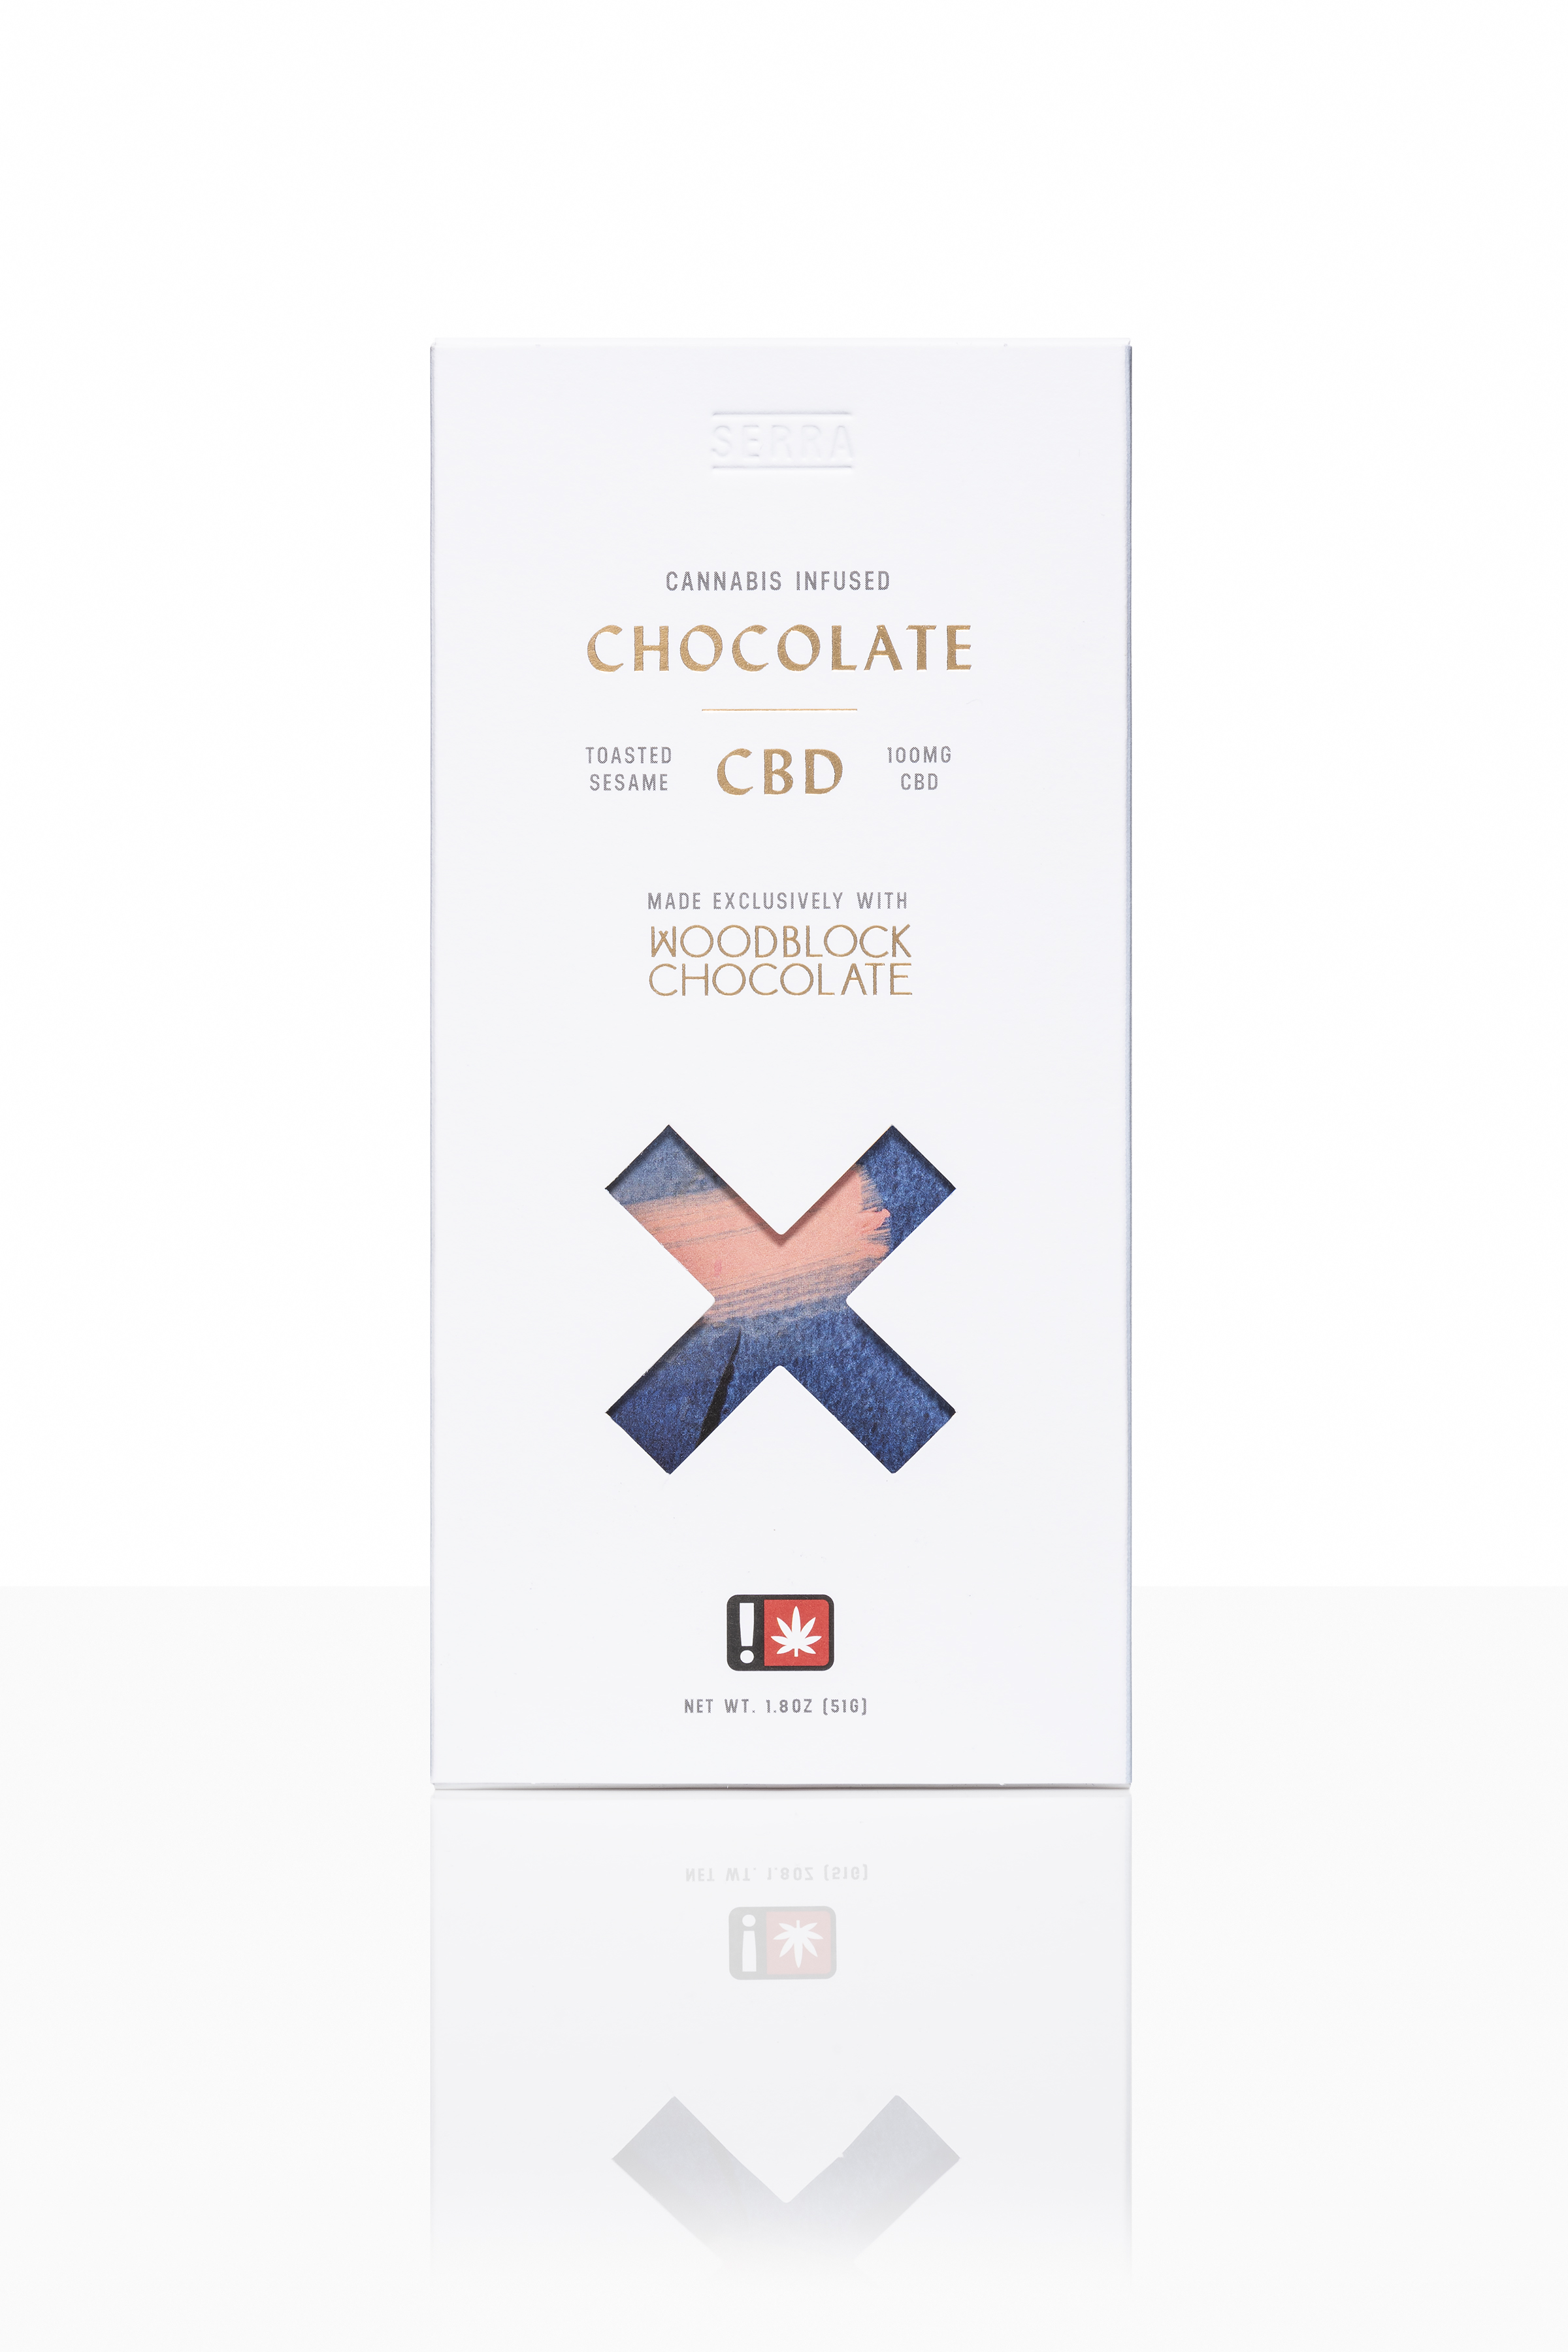 CBD Toasted Sesame - X marks Relief.Notes of cherry, coffee and lemon in our 70% dark chocolate blend of Tanzanian and Ecuadorian cacao shine through toasted sesame seed topping in this aromatic balance of sweet and savory.Vegan and Gluten-Free.100mg CBD per large bar. 10 servings per large bar.40mg CBD per small bar. 4 servings per small bar.